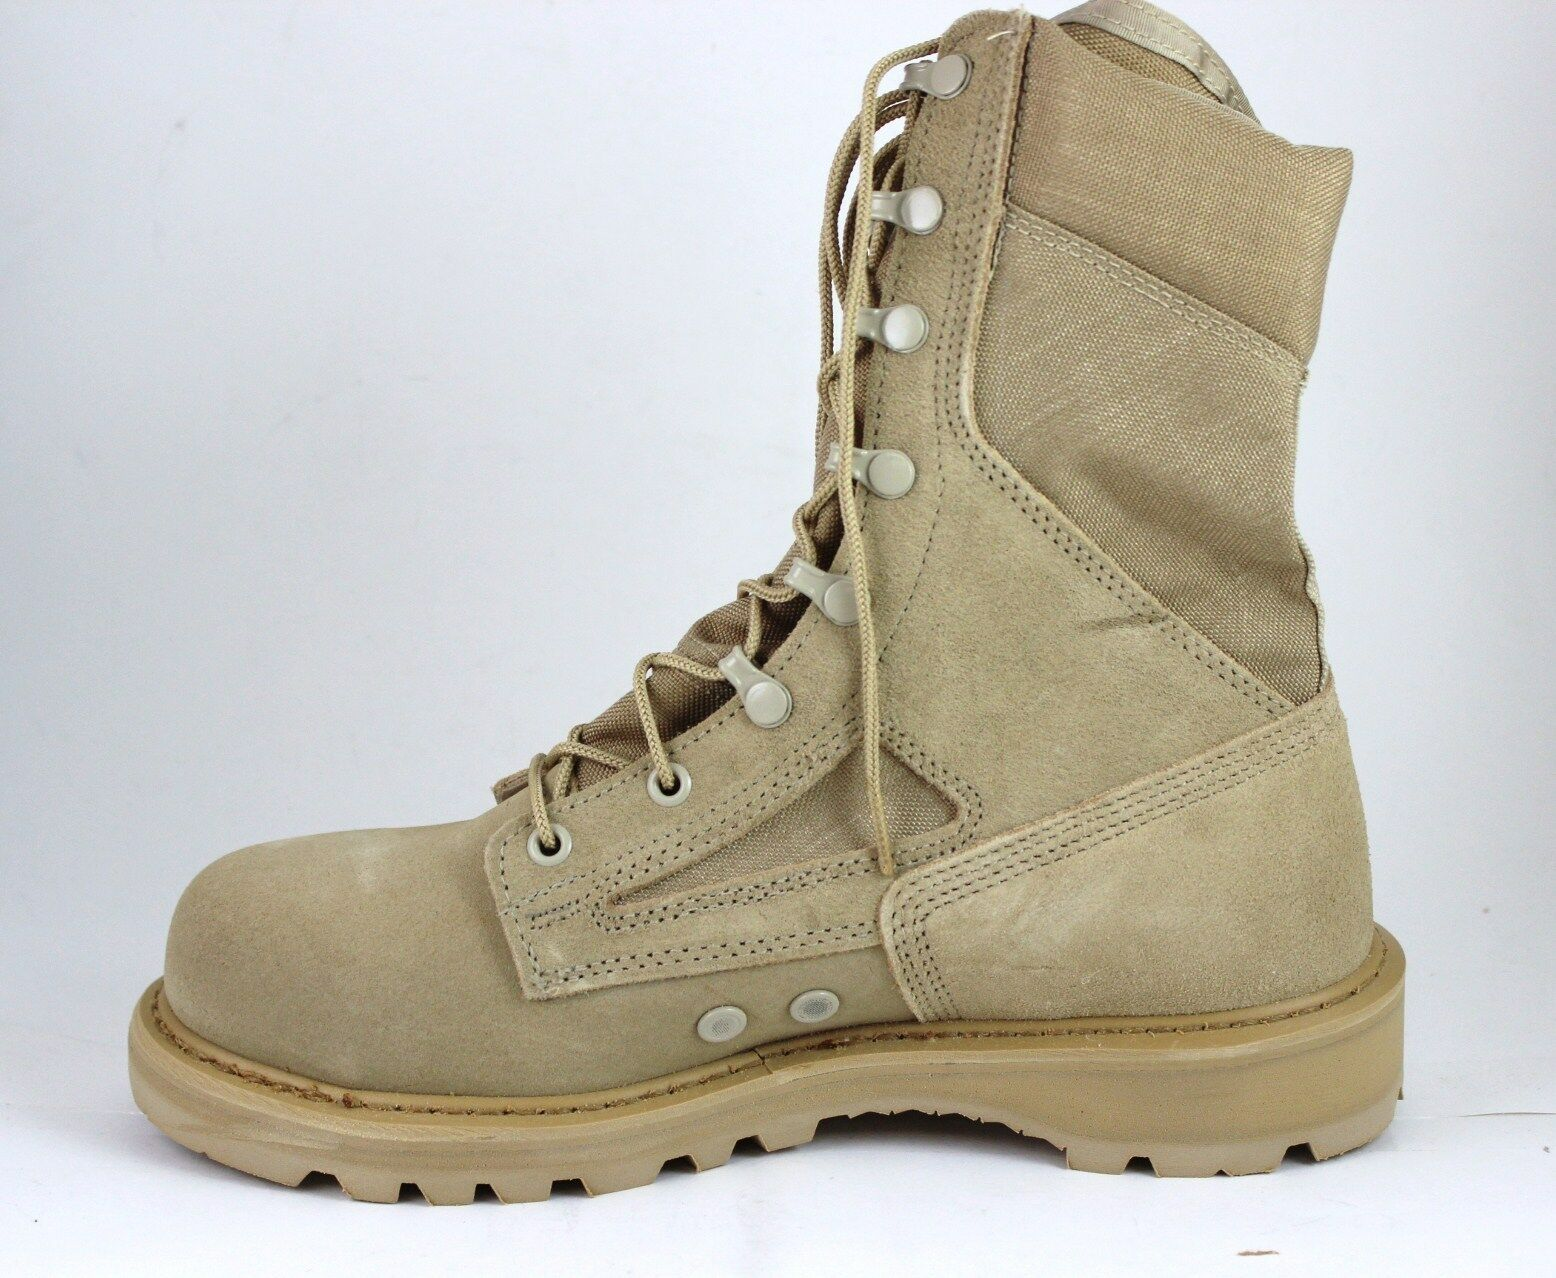 Rocky Stiefel Stiefel Stiefel R6008 8  Hot Weather Tan Desert Safety Steel Toe Brand New In Box 2e2c5f